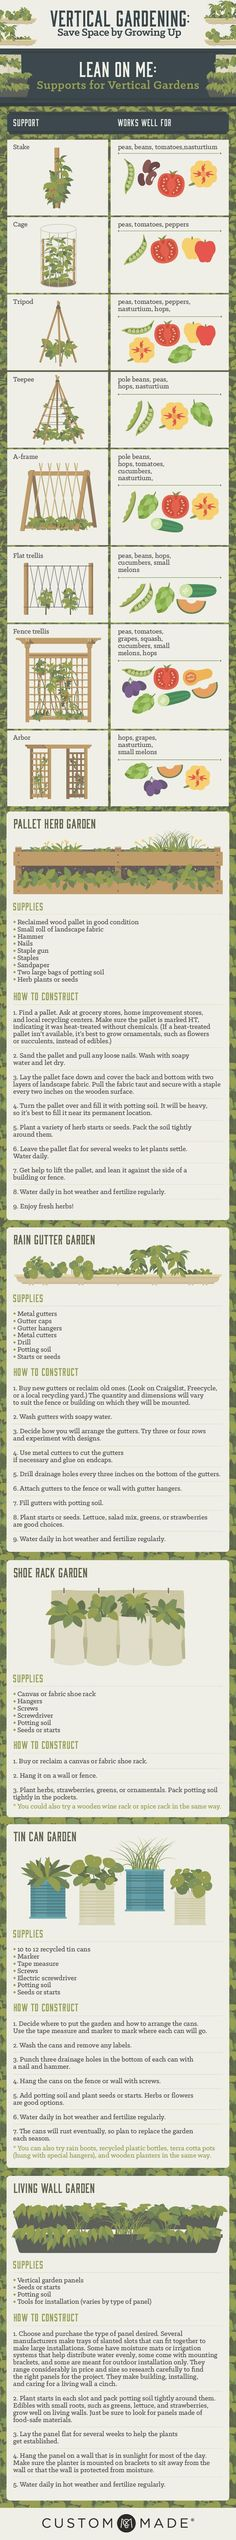 How to grow a vertical garden #vegetablegardeninfographic